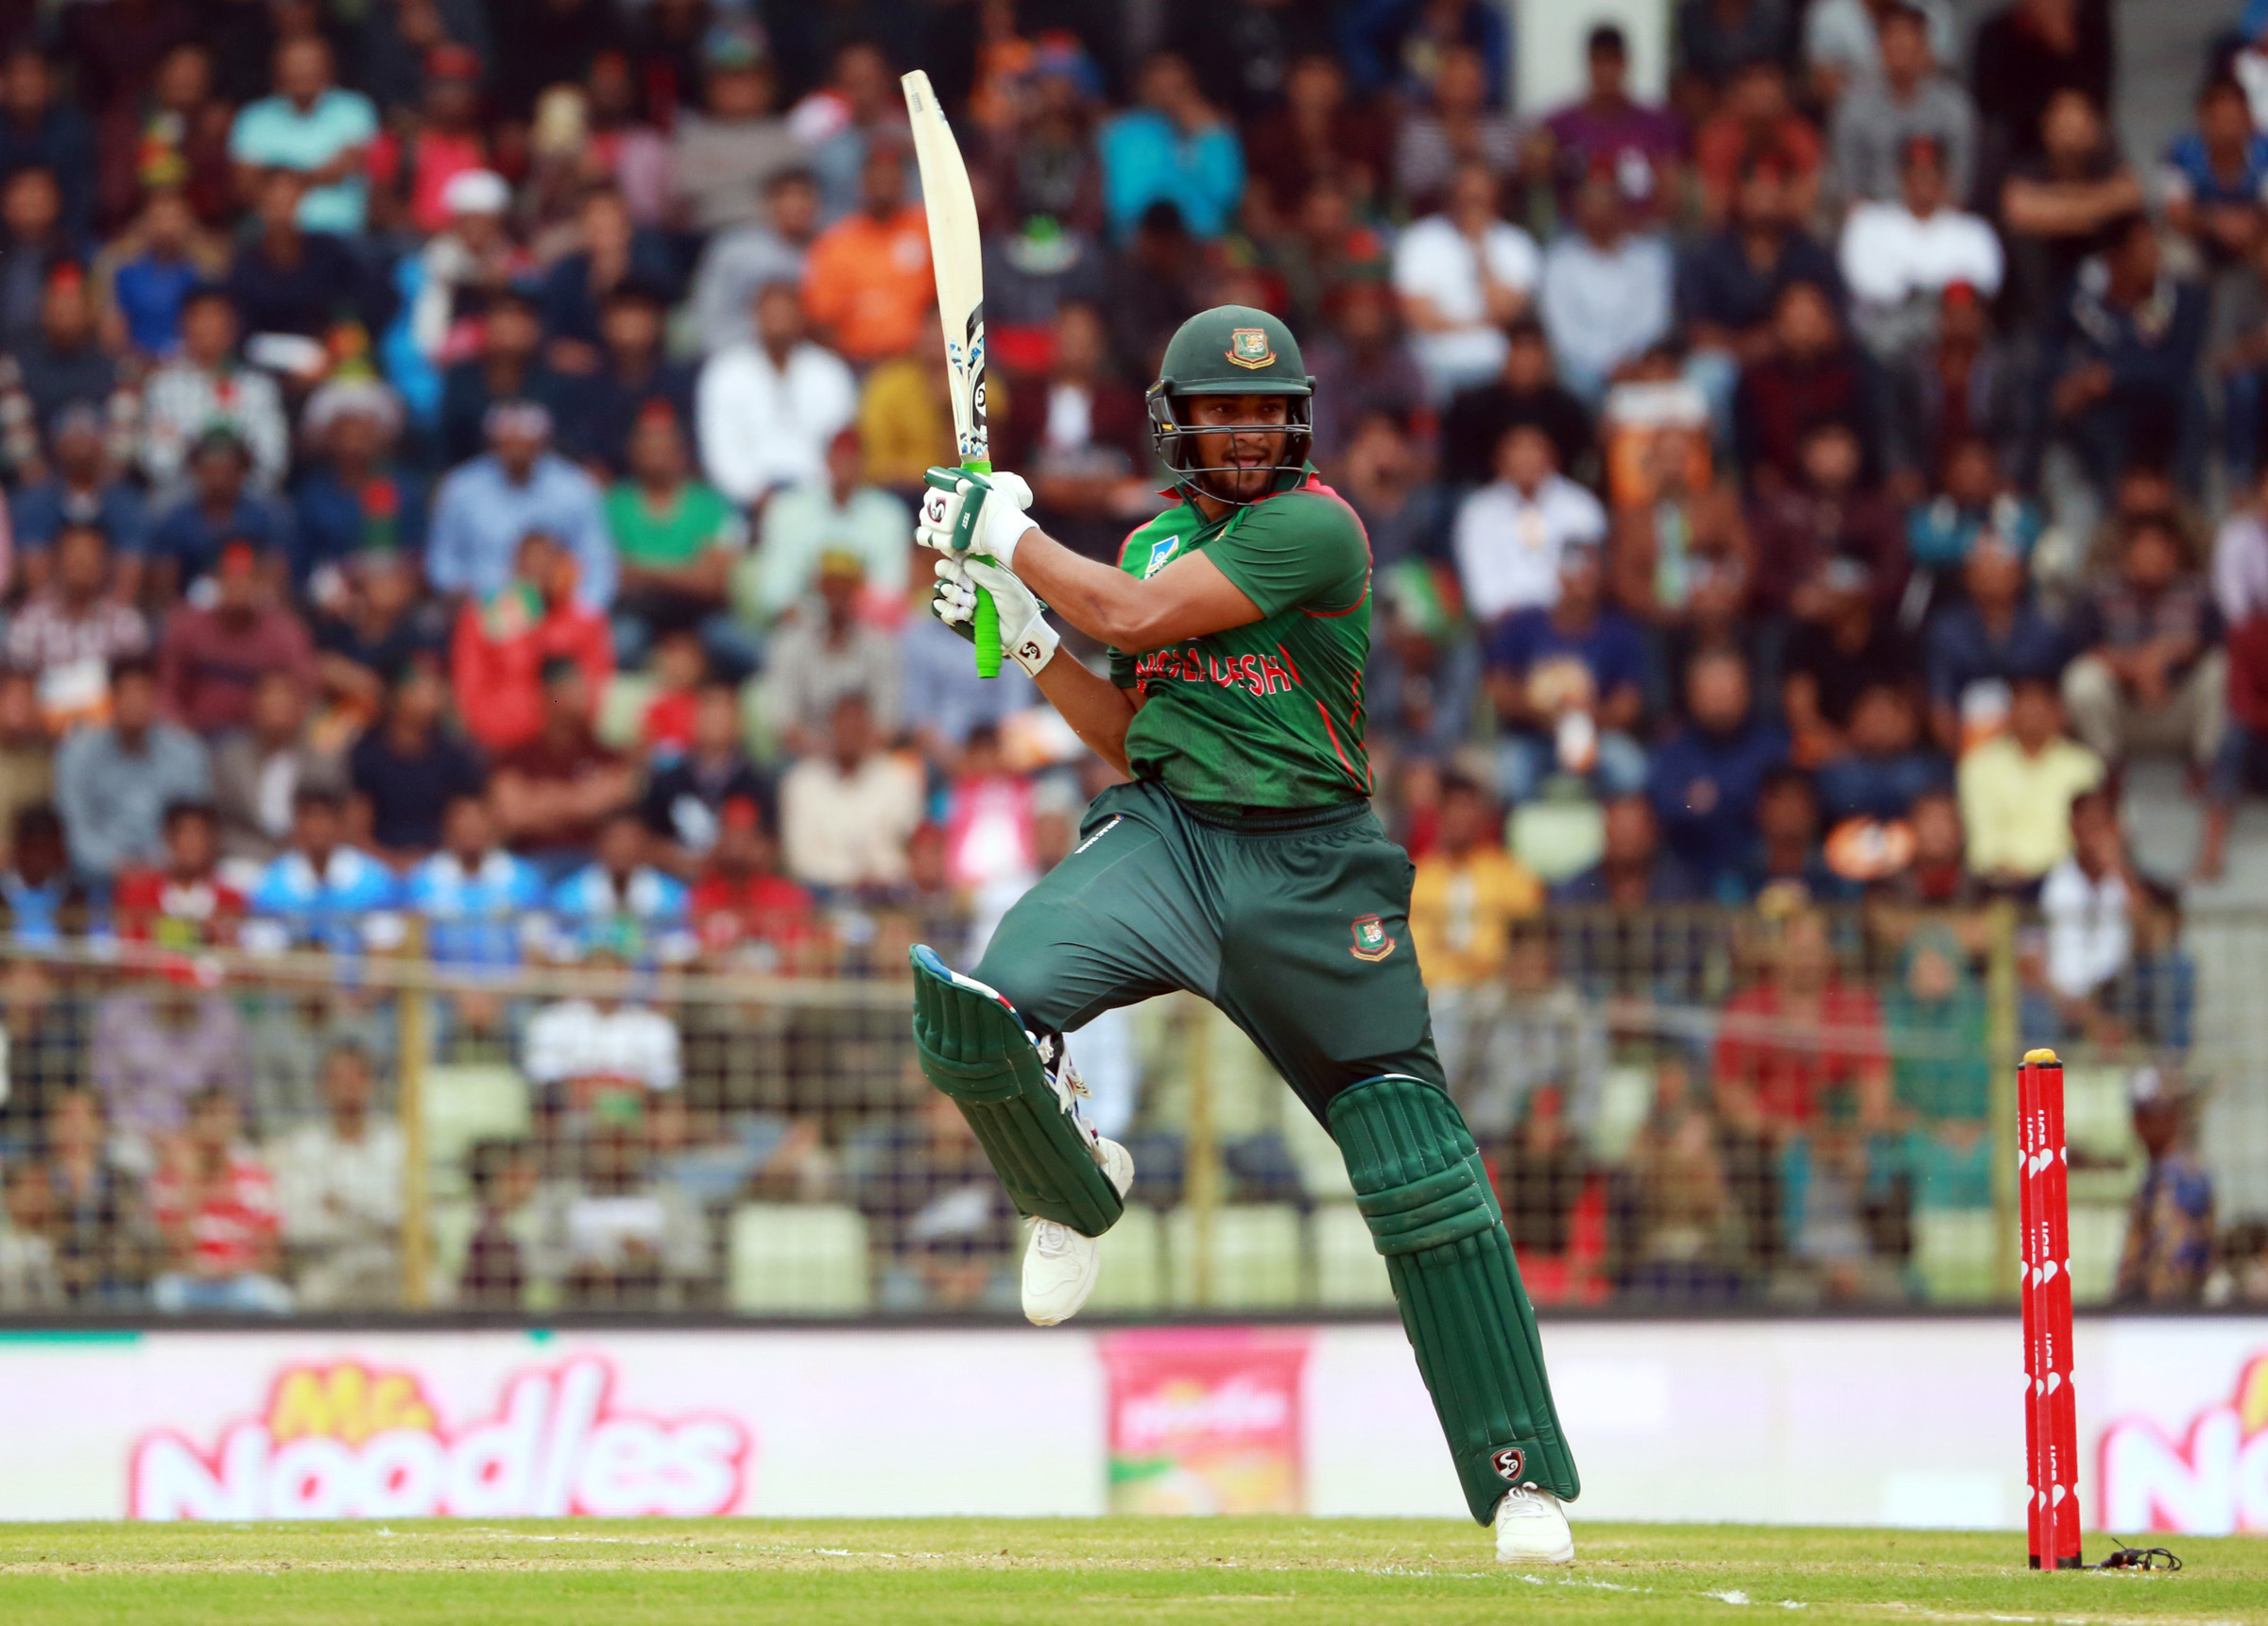 Shakib Al Hasan plays a shot during the first Twenty20 International match between Bangladesh and West Indies at Sylhet International Cricket        Stadium on Monday. Shakib scored 61 runs.